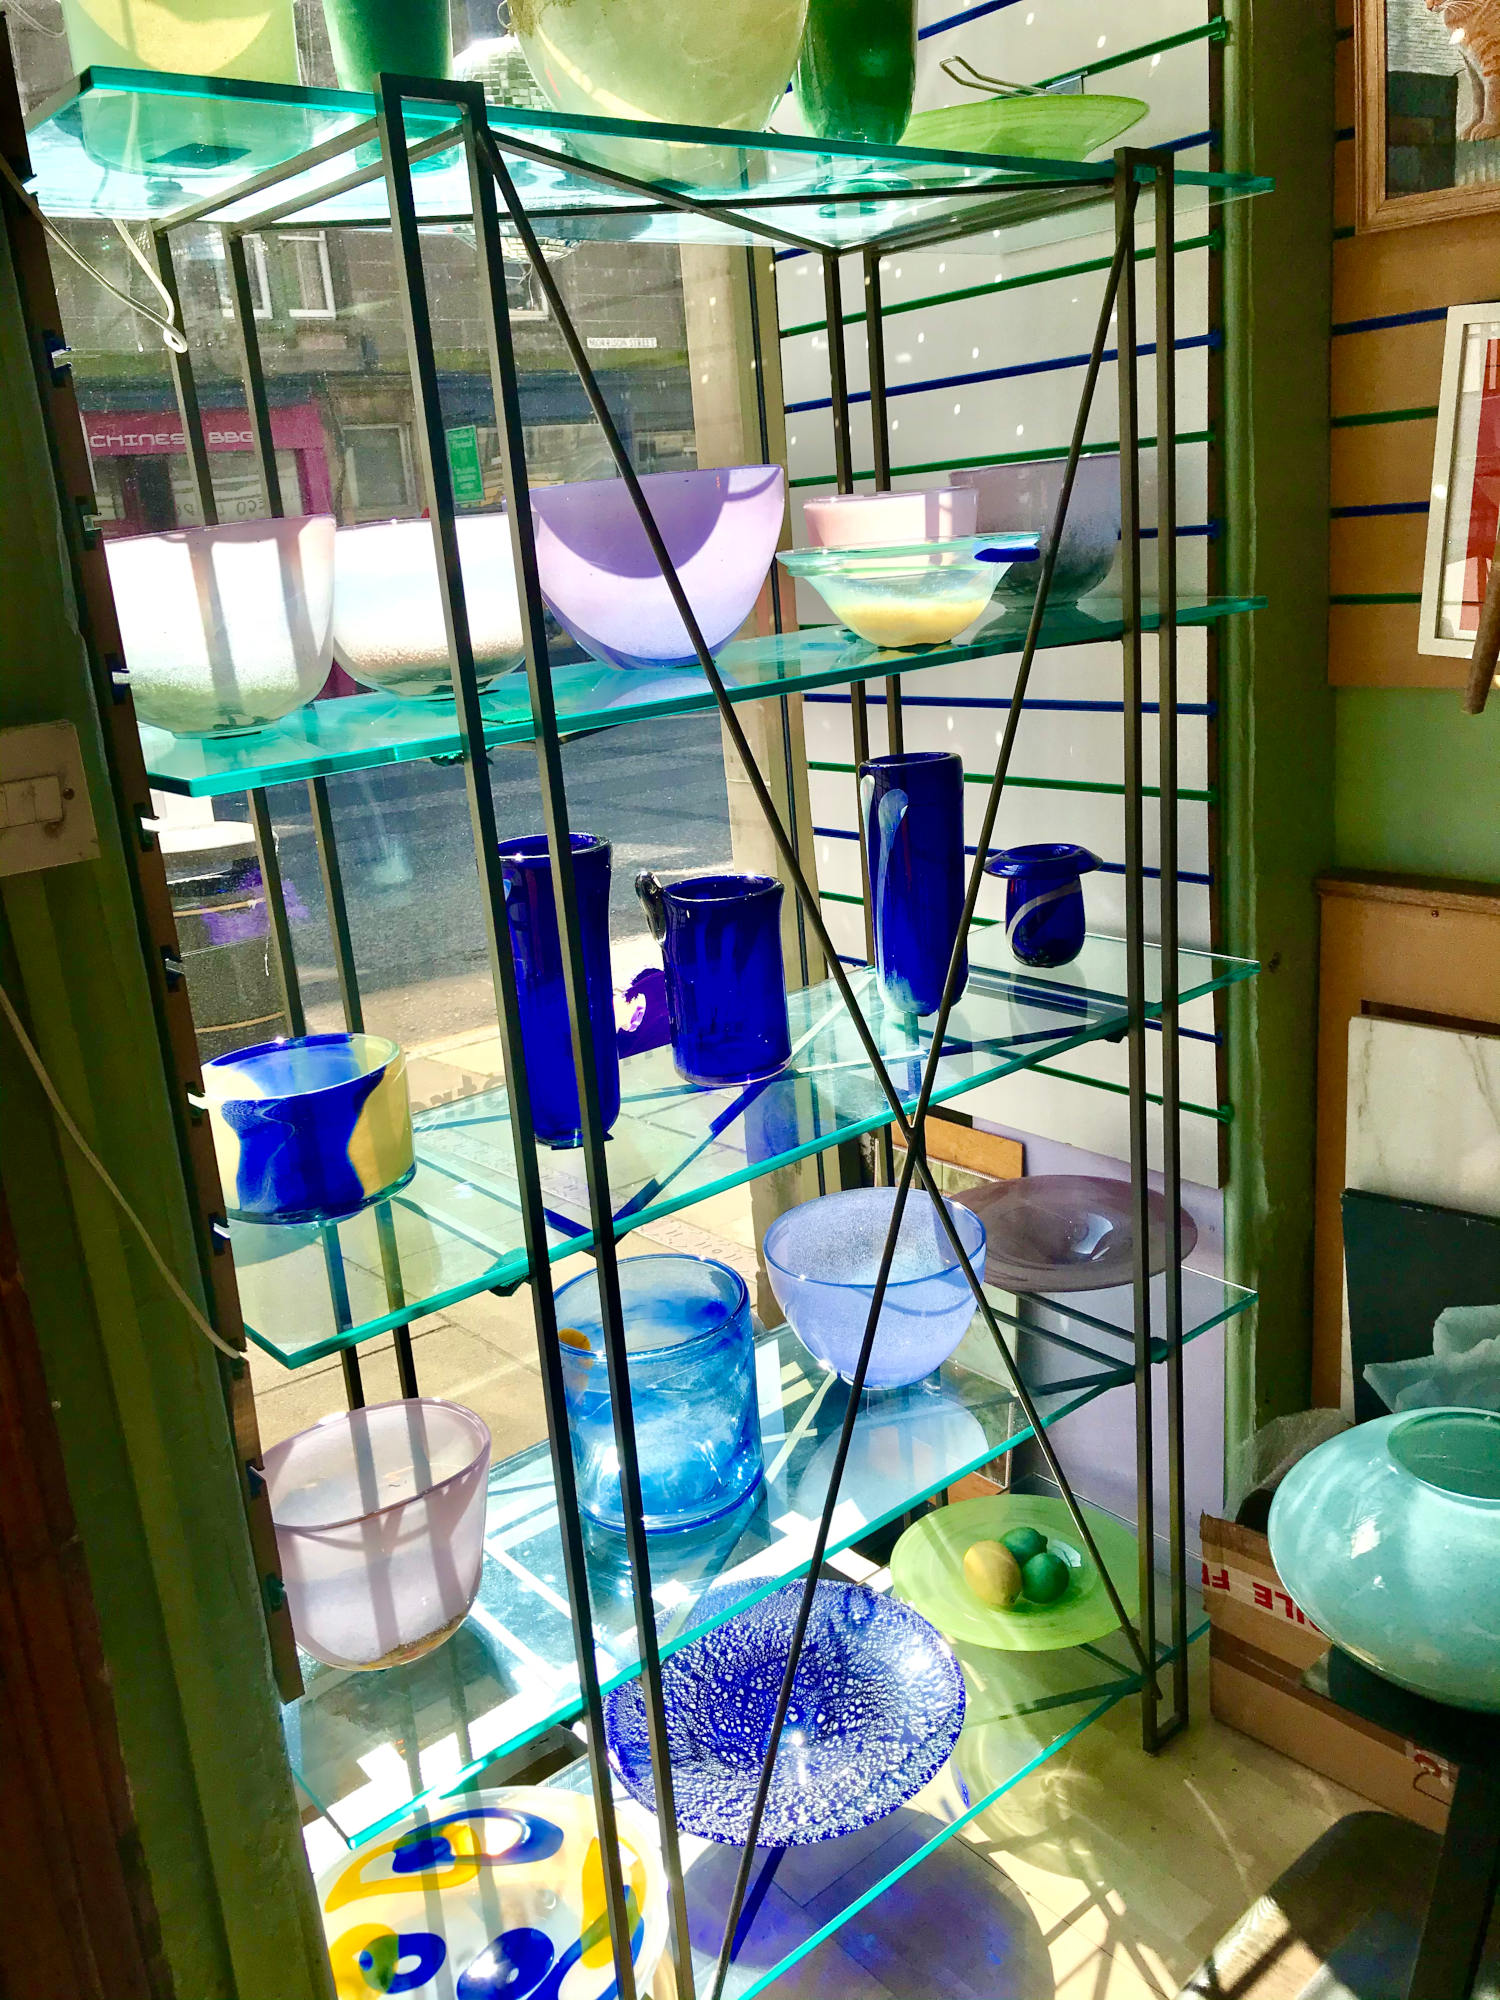 The art glass Collection